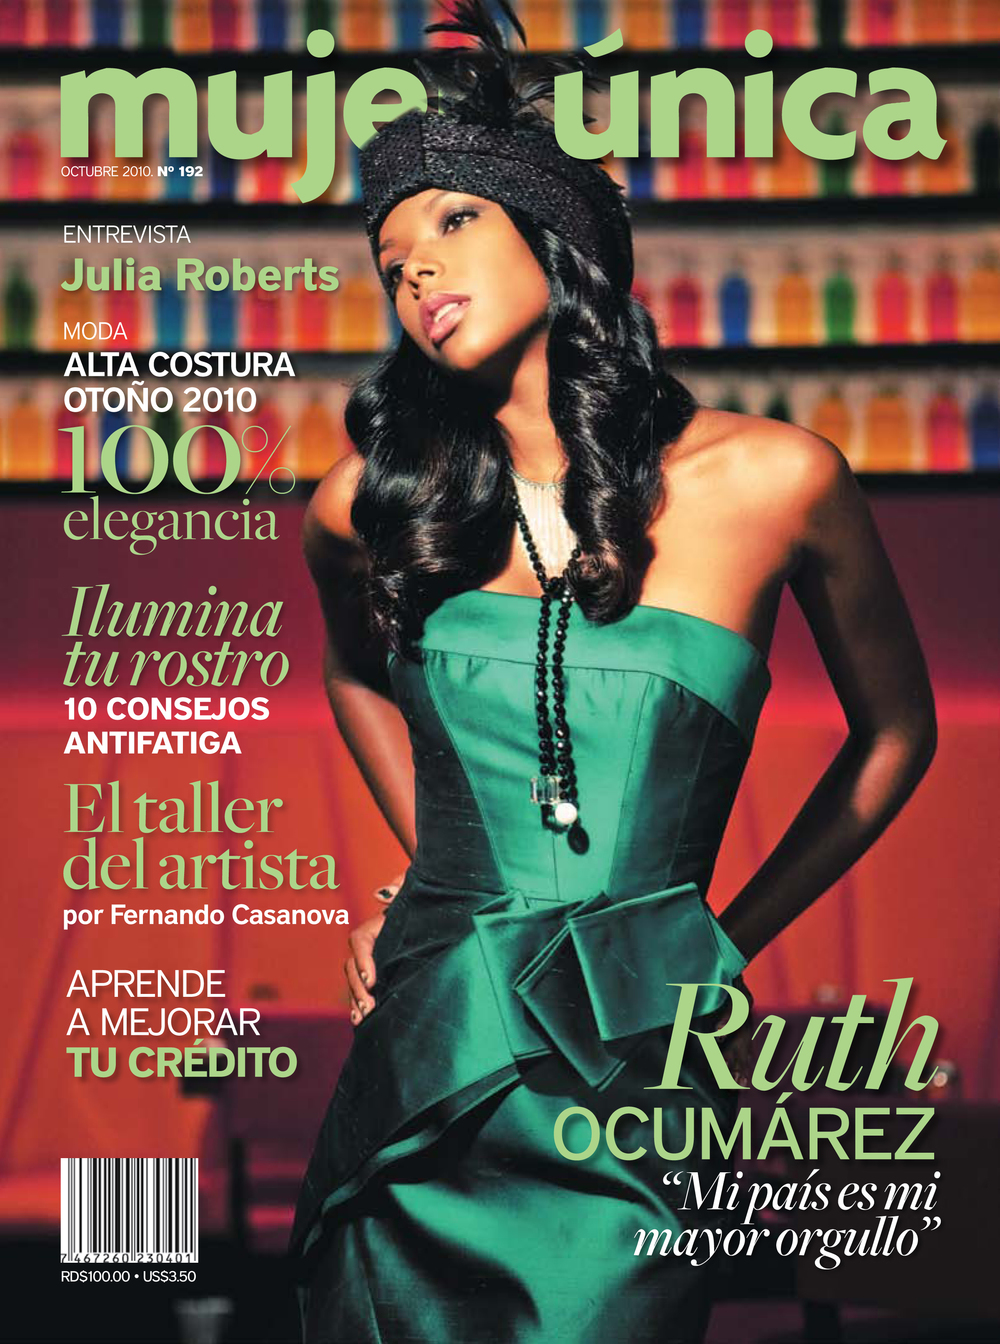 MUJER UNICA COVER 10:10.jpg